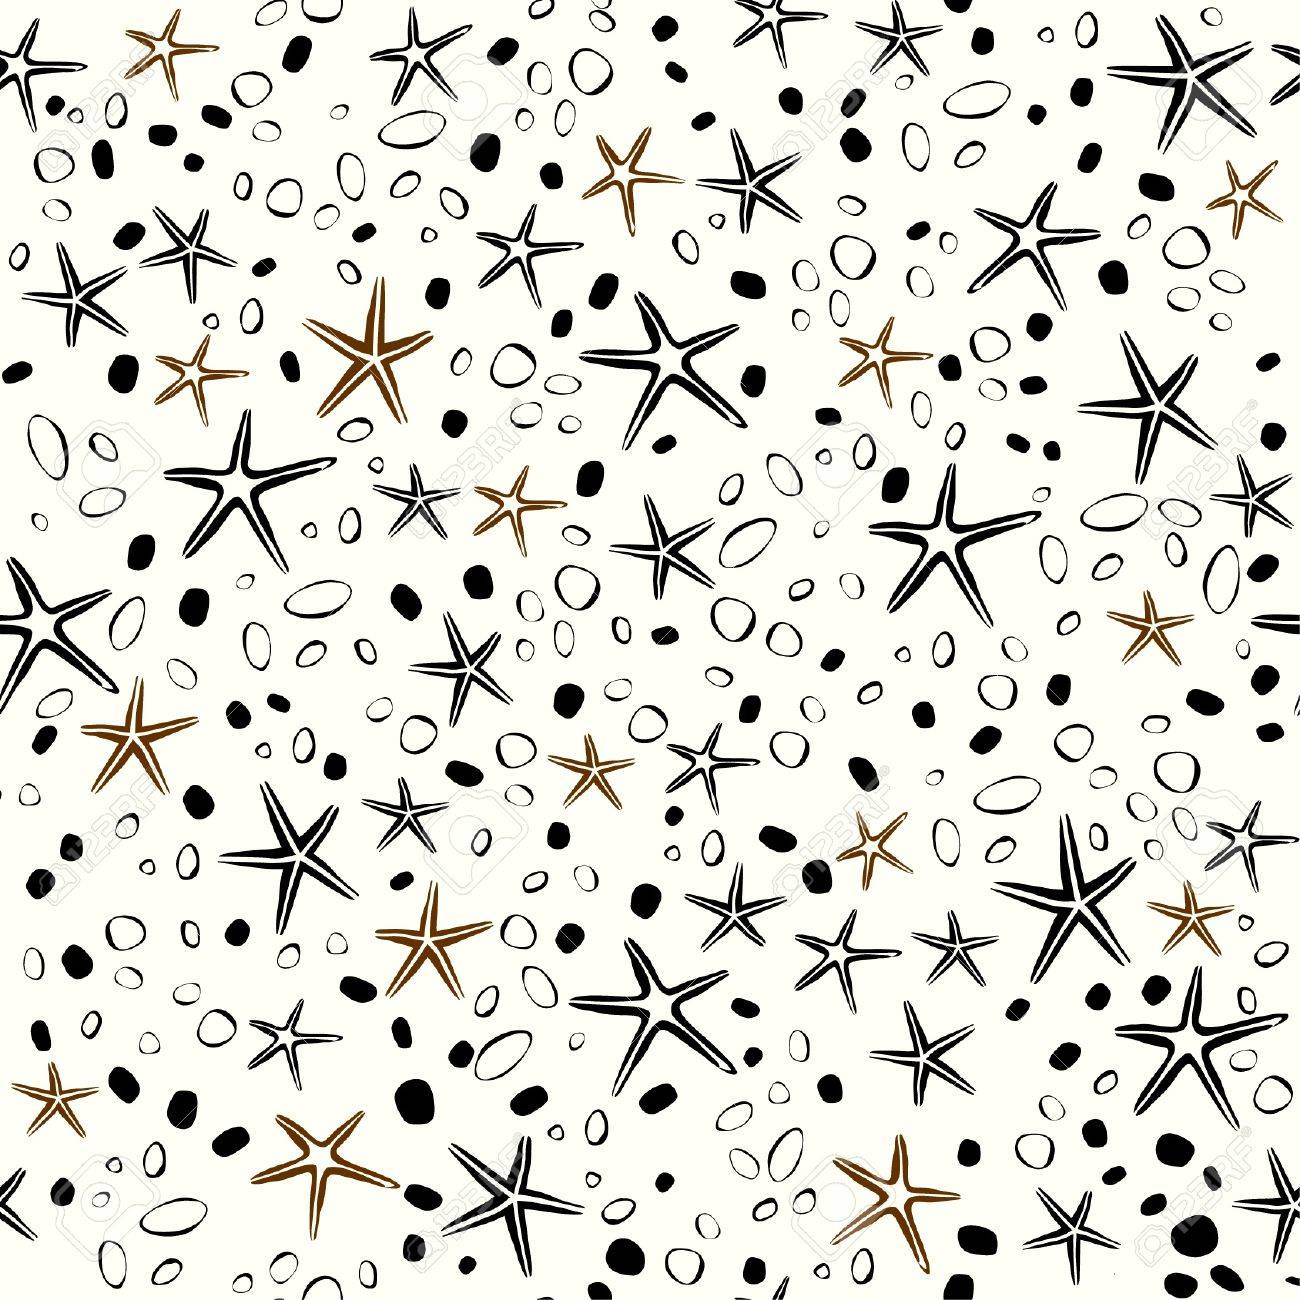 Seamless decorative hand drawn texture  Endless pattern with stars, bubbles, stones  Template for design and decoration Stock Vector - 17272535